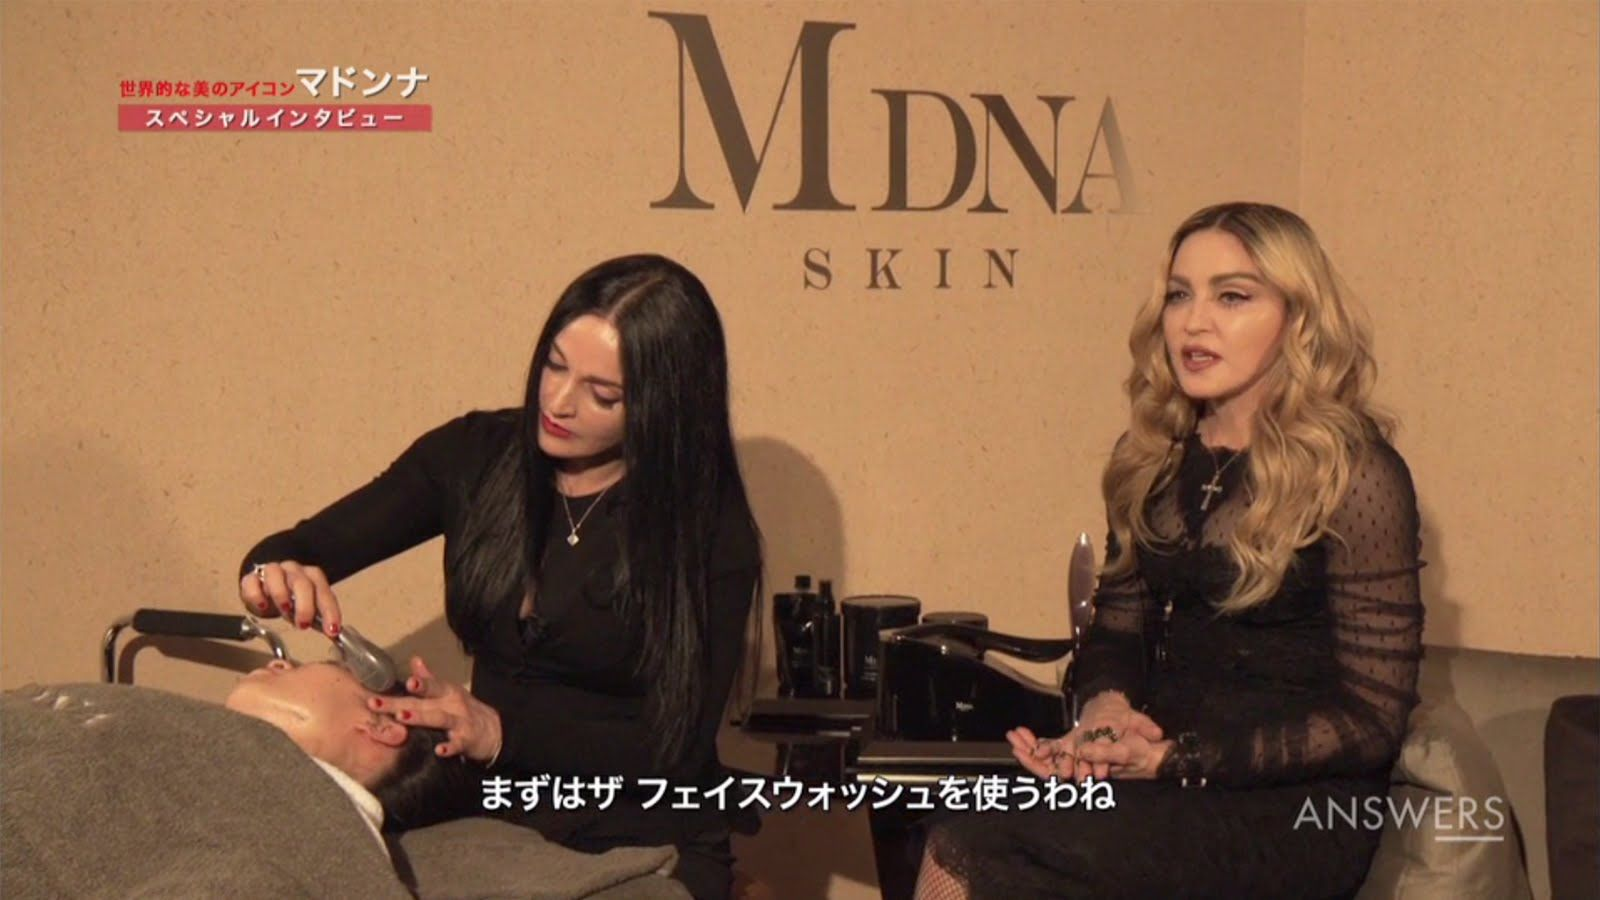 Media answers mdna skin official bsanswersmdna skin 10 voltagebd Image collections